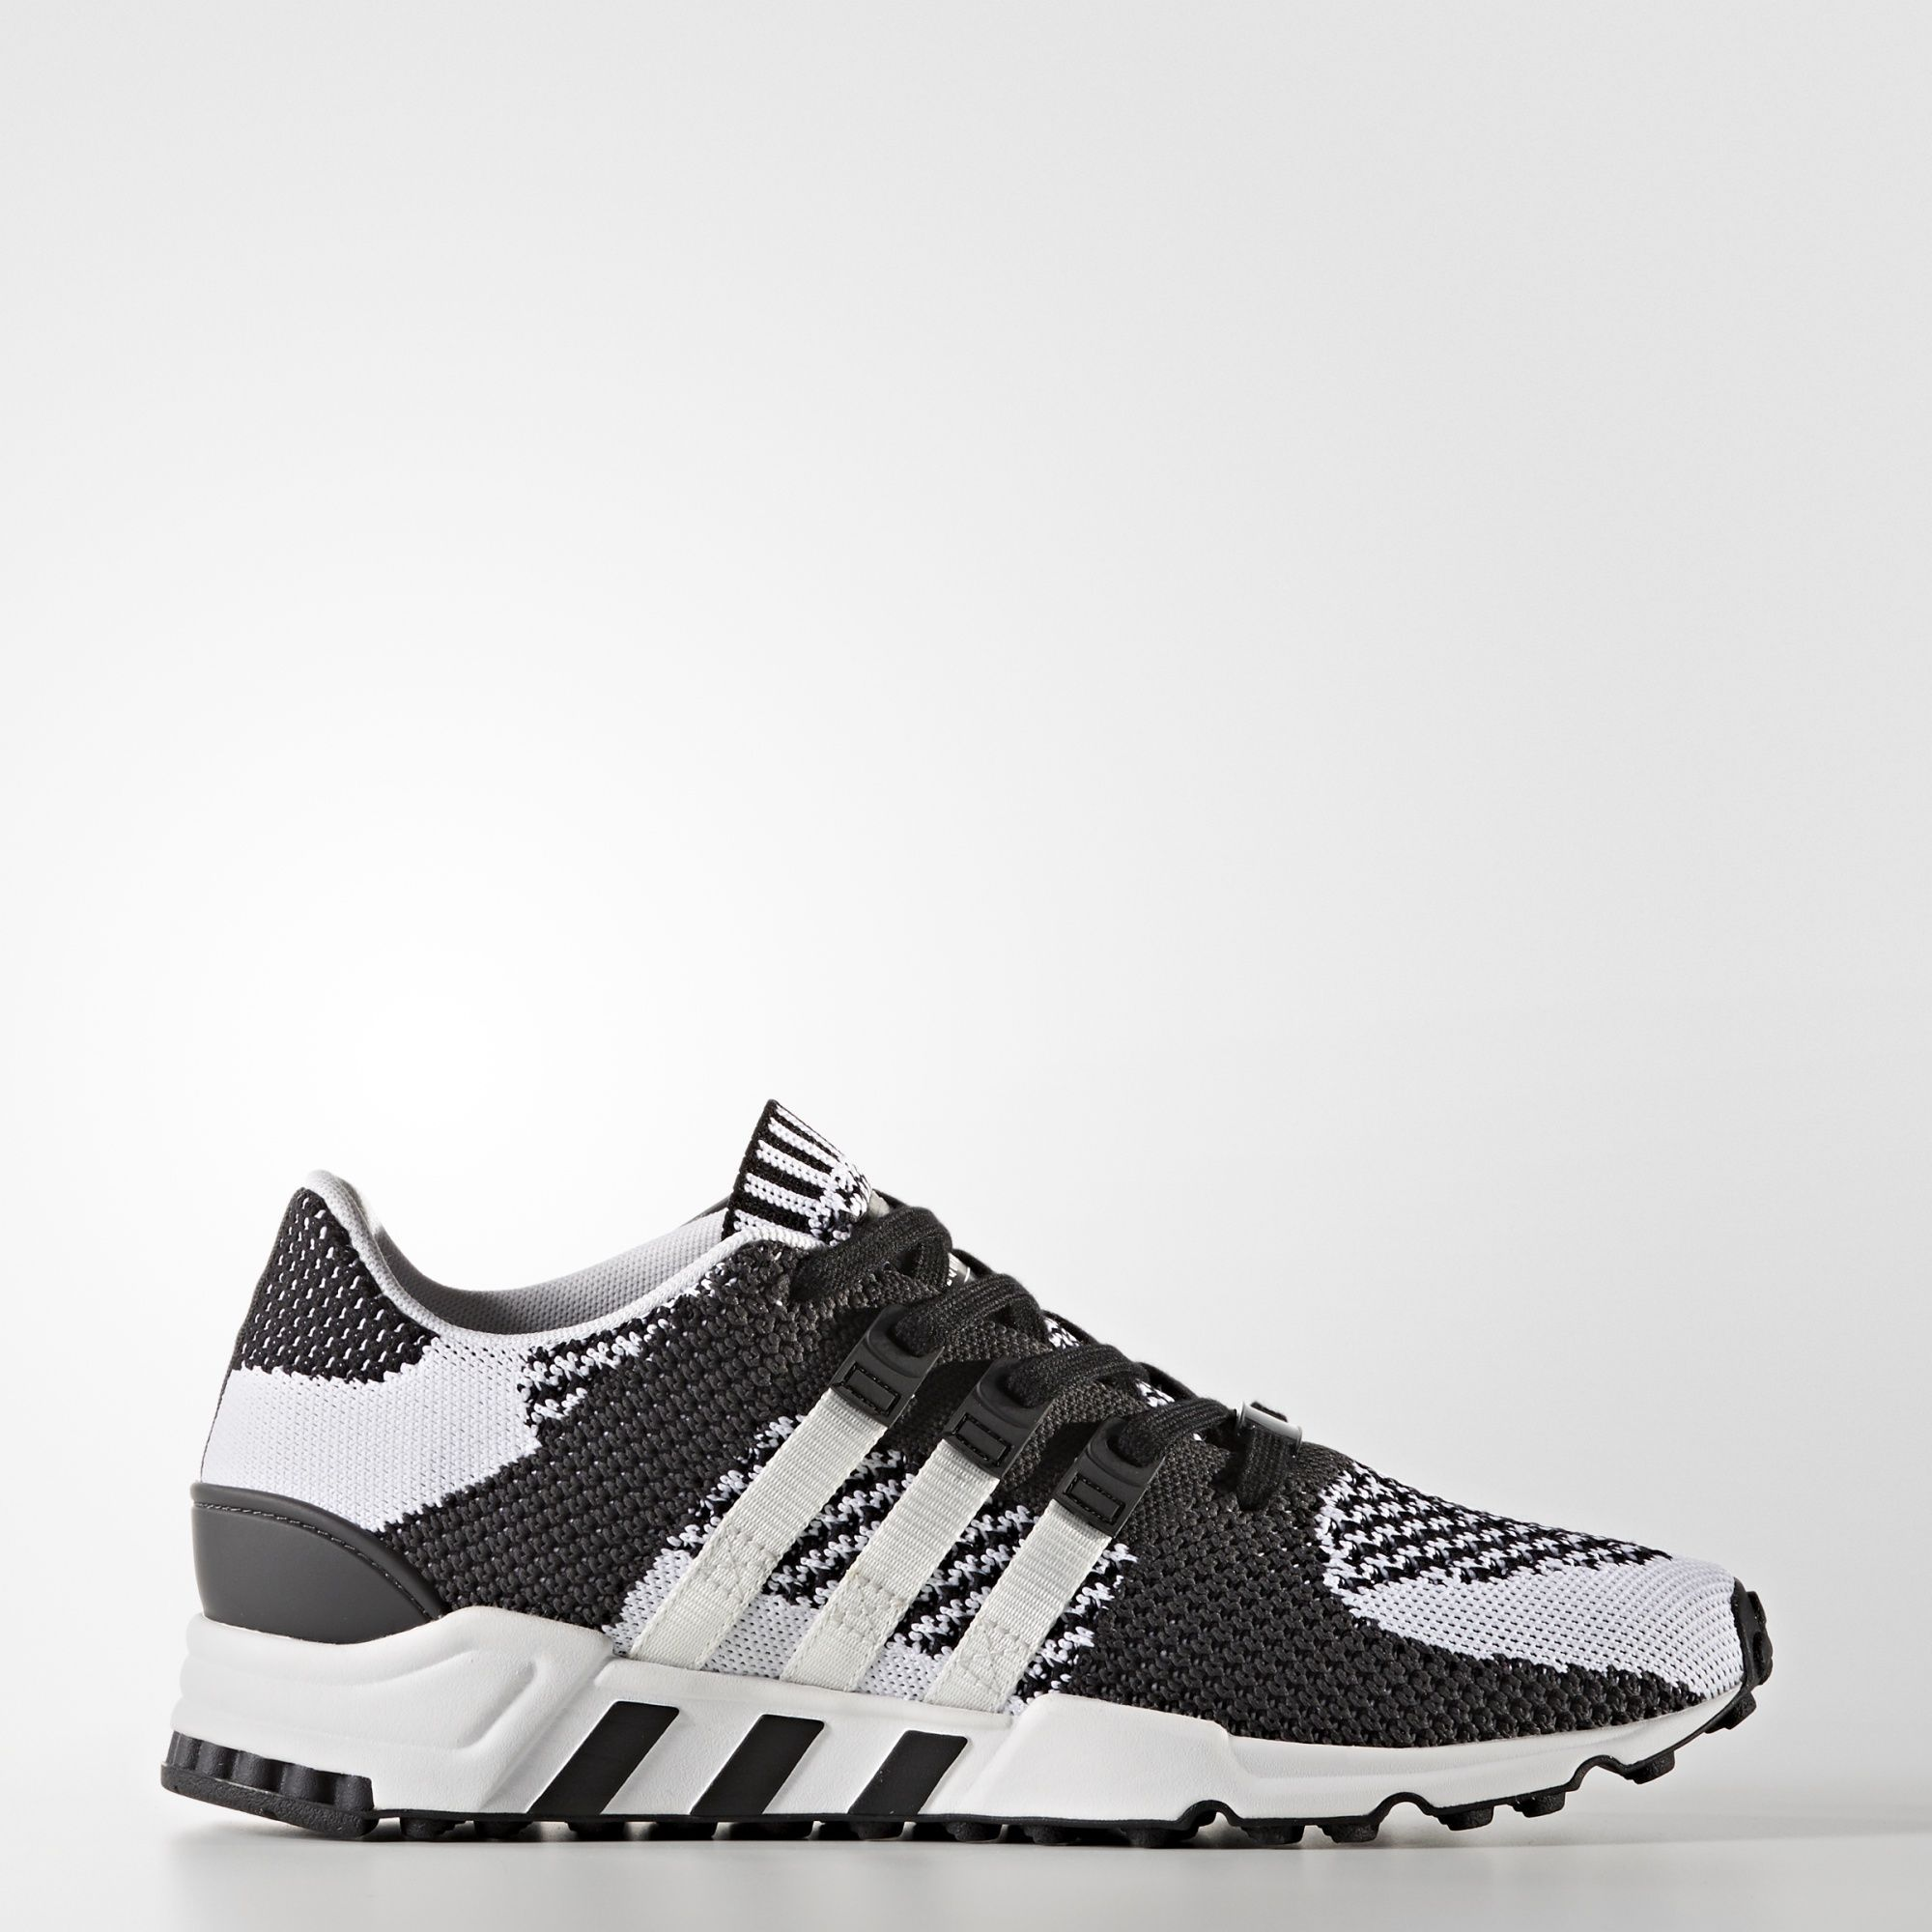 adidas EQT Support RF Primeknit Schuh | nice Shoes